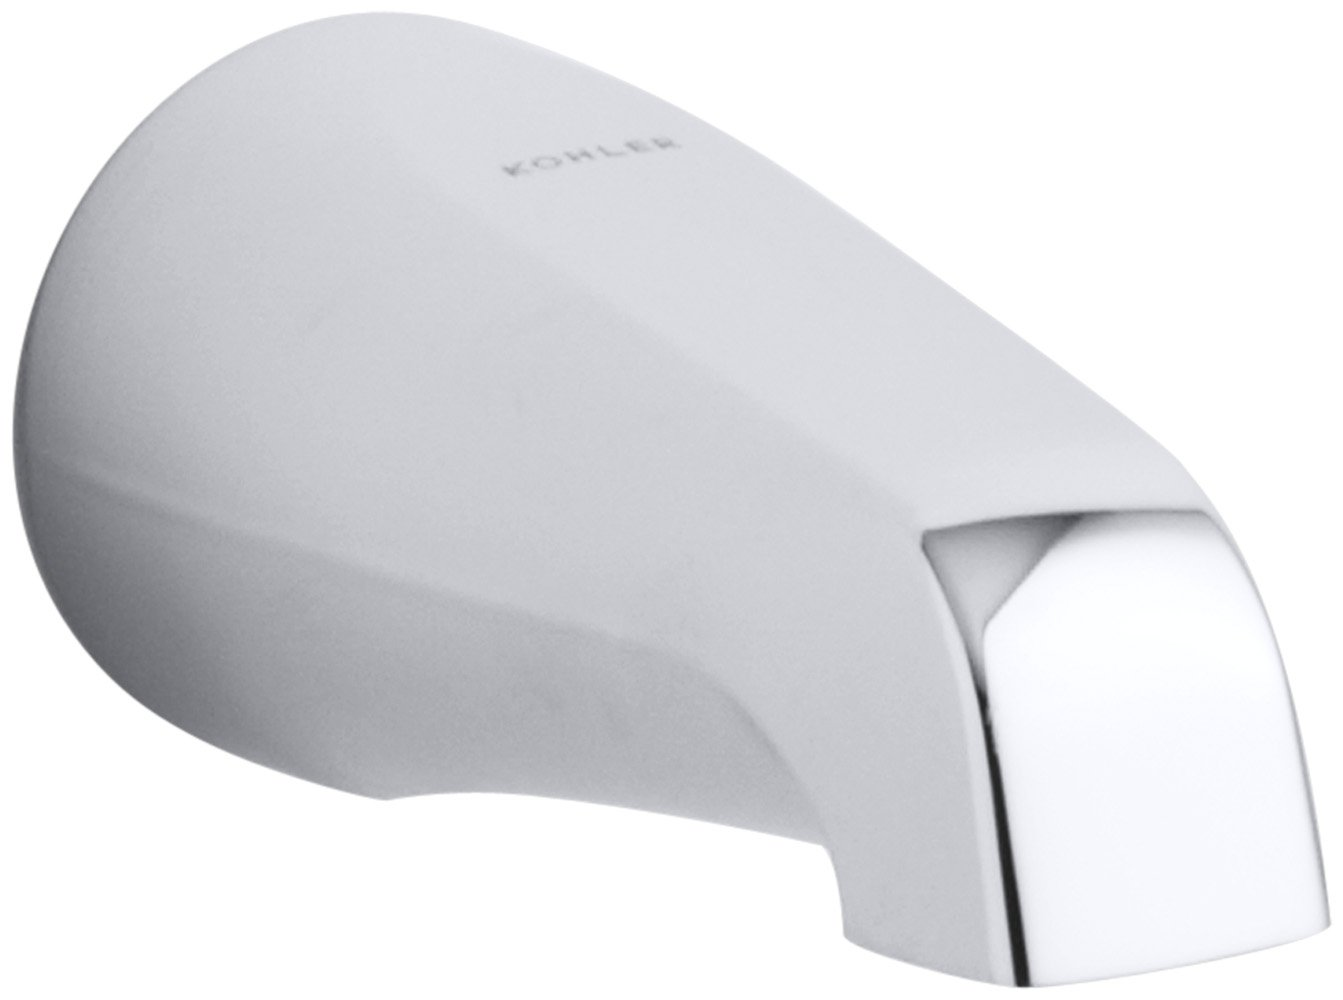 KOHLER K-15135-S-CP Coralais Non-Diverter Bath Spout, Polished Chrome